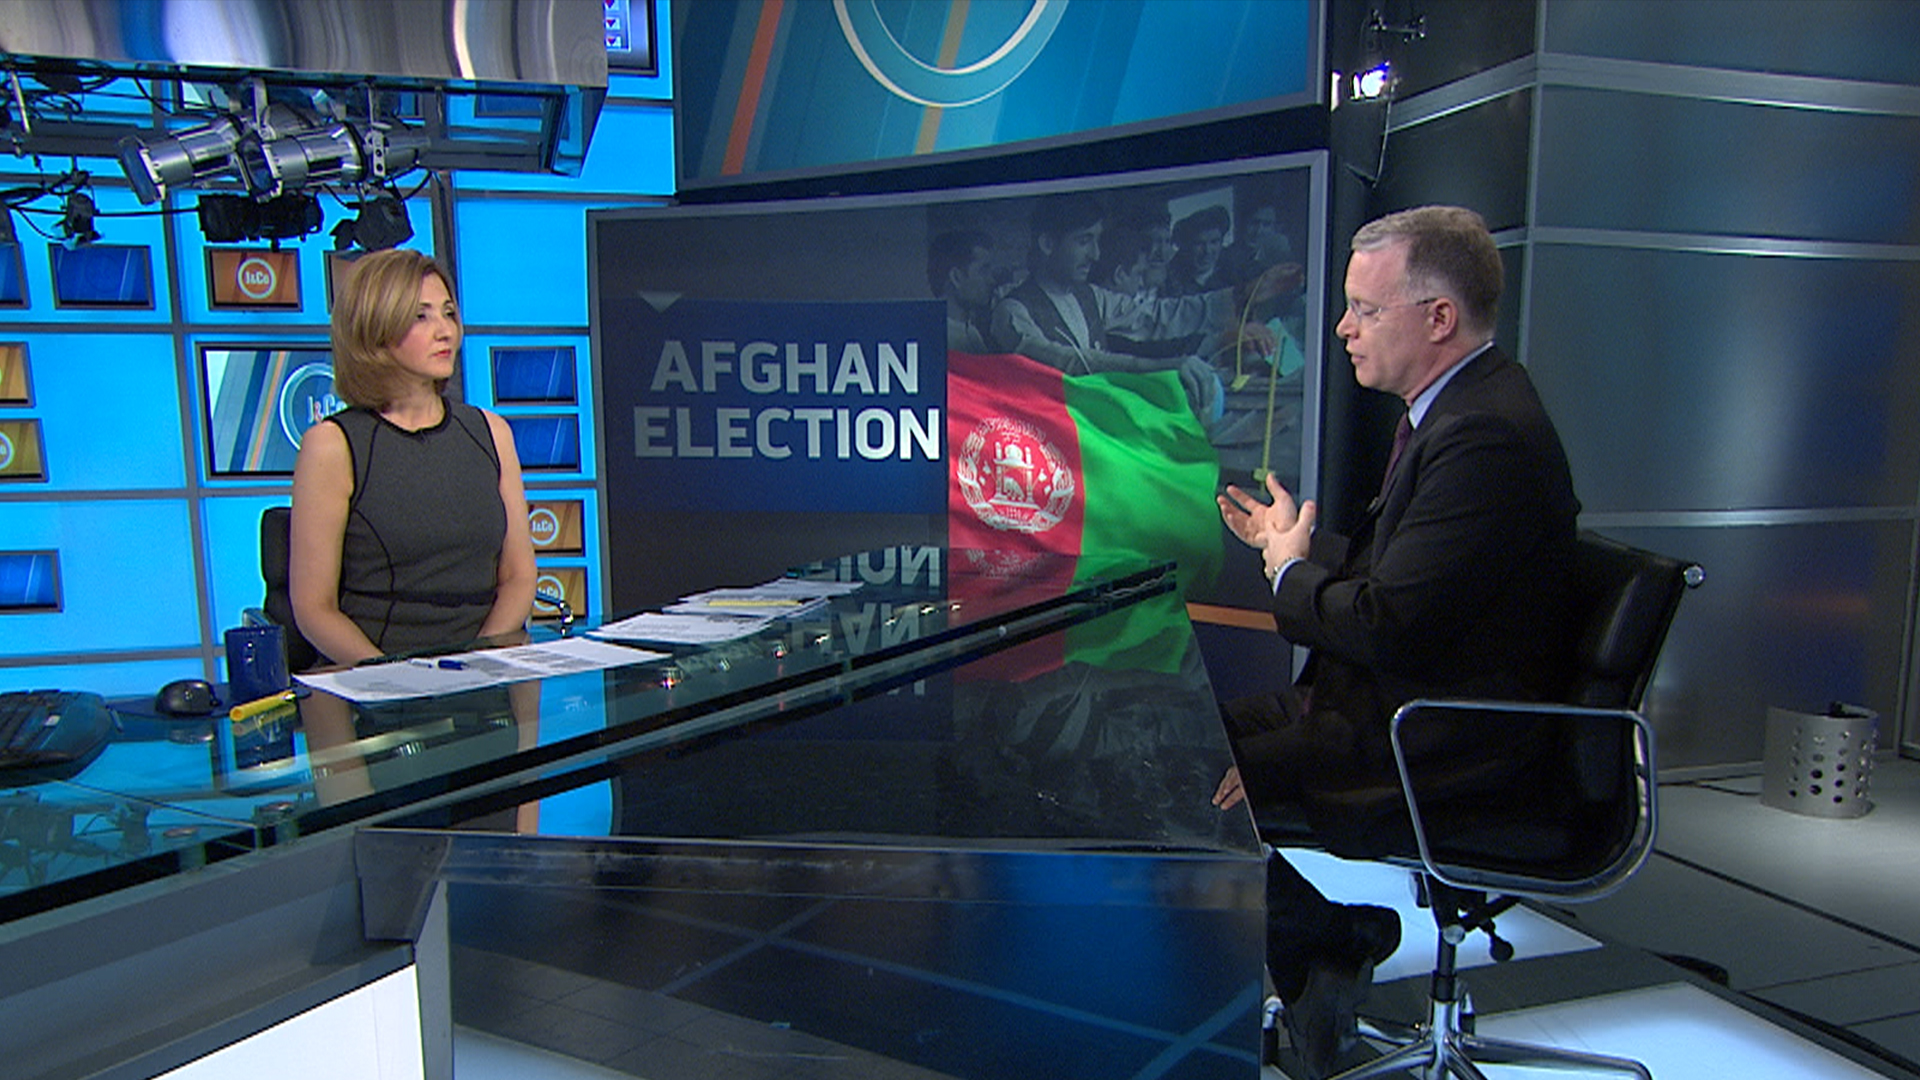 Milestone elections in Afghanistan